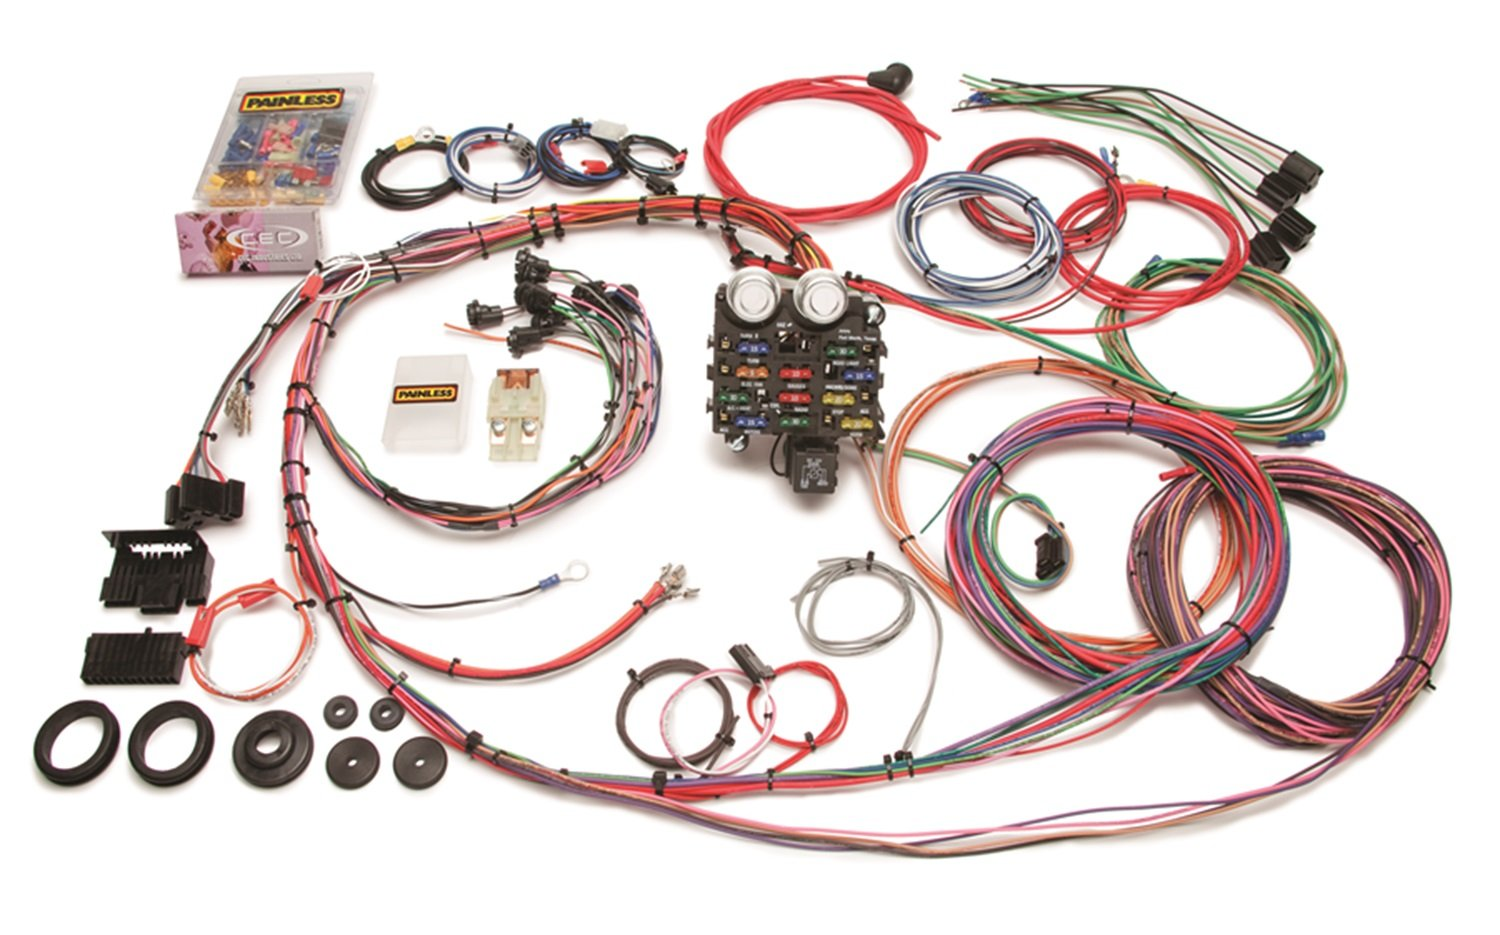 Clic Car Wiring Harness Diagram Will Be A Thing Gm For Vehicles Amazon Com Painless 10112 12 Circuit Pickup Automotive Rh Oem Connectors